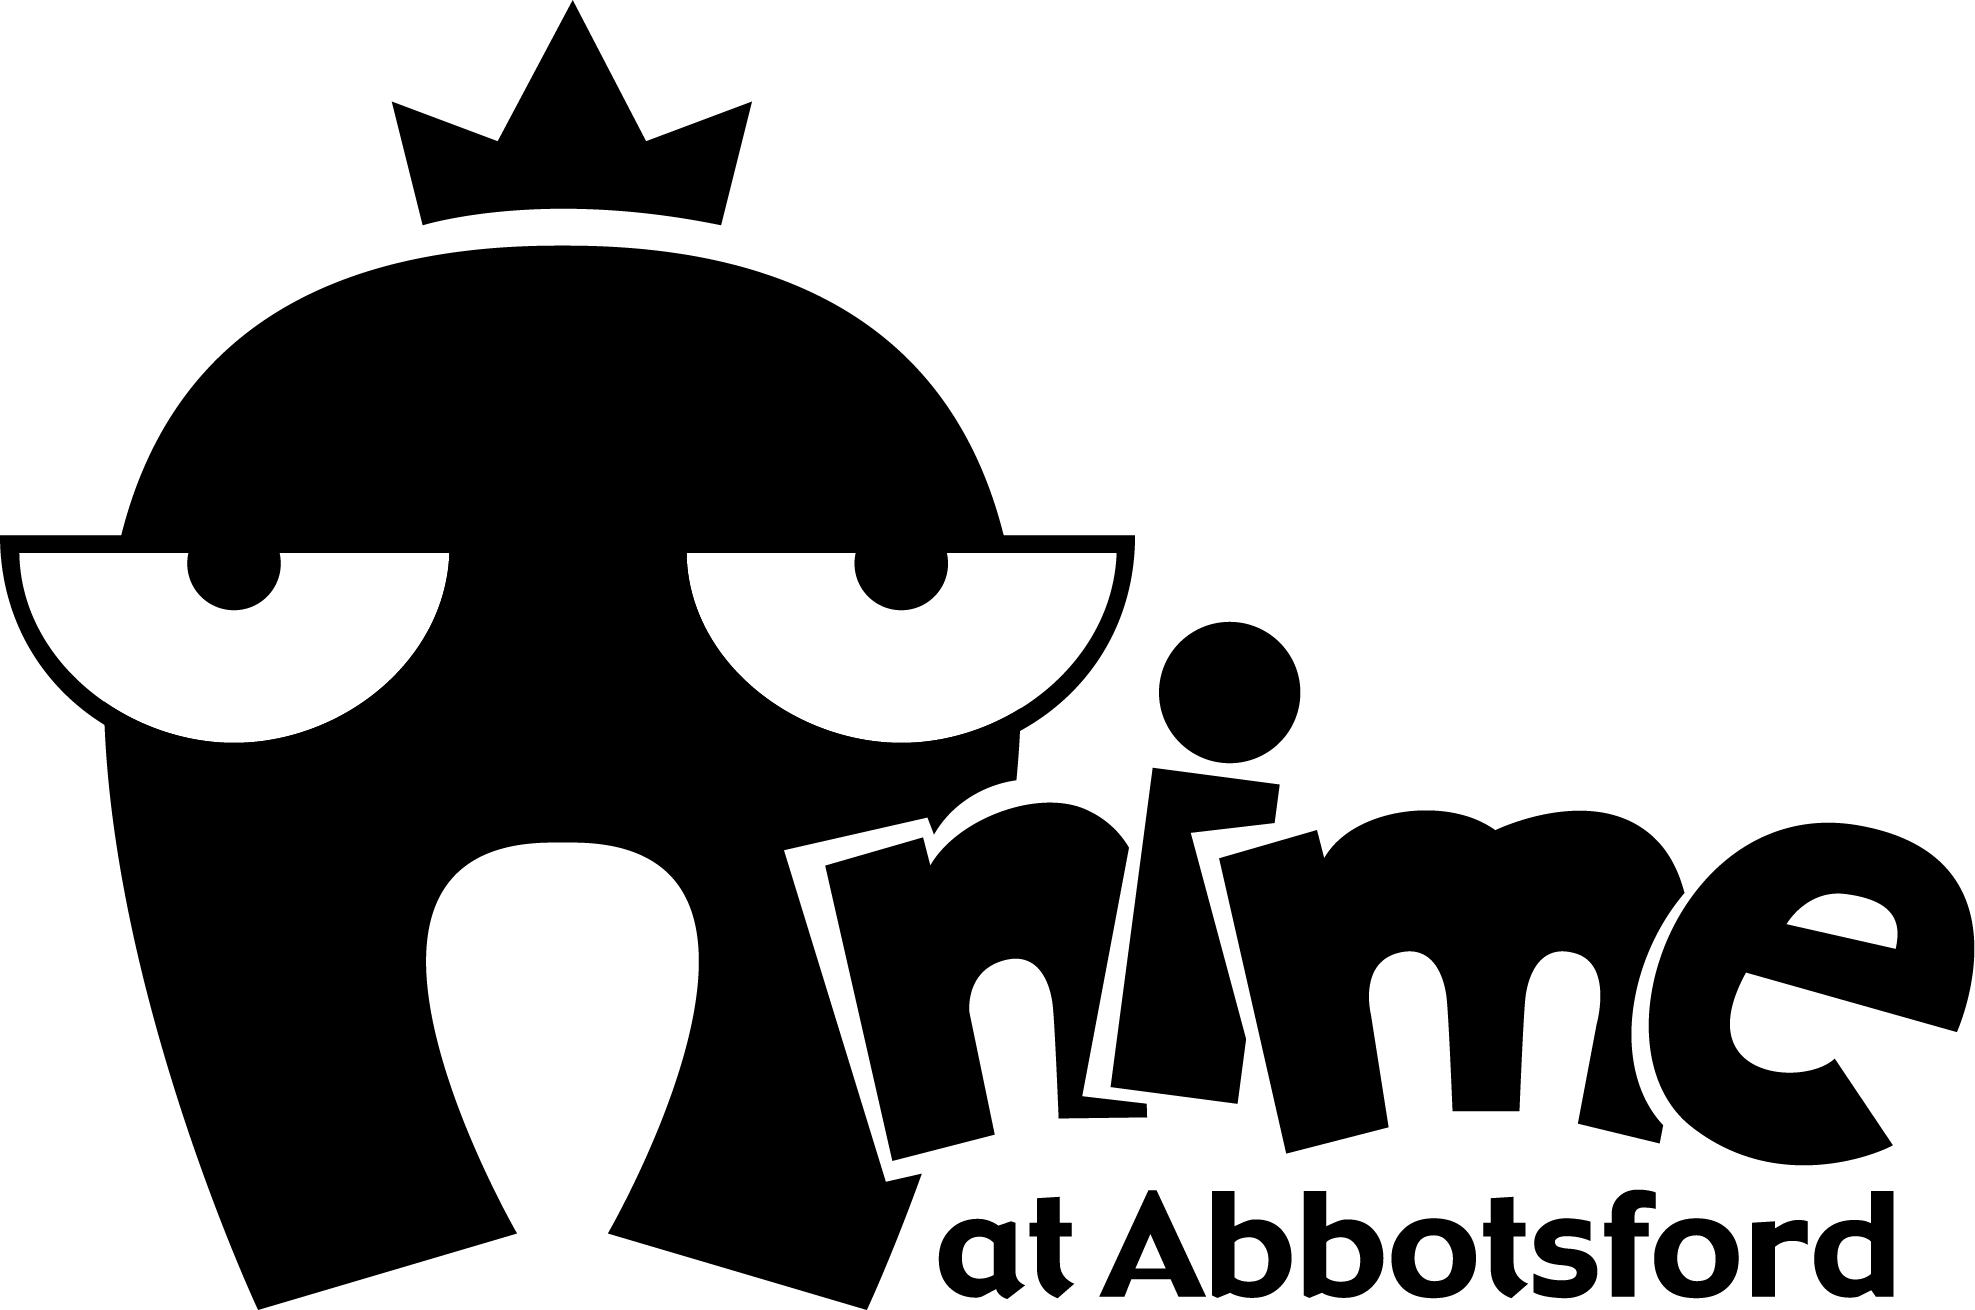 Anime at Abbotsford logo